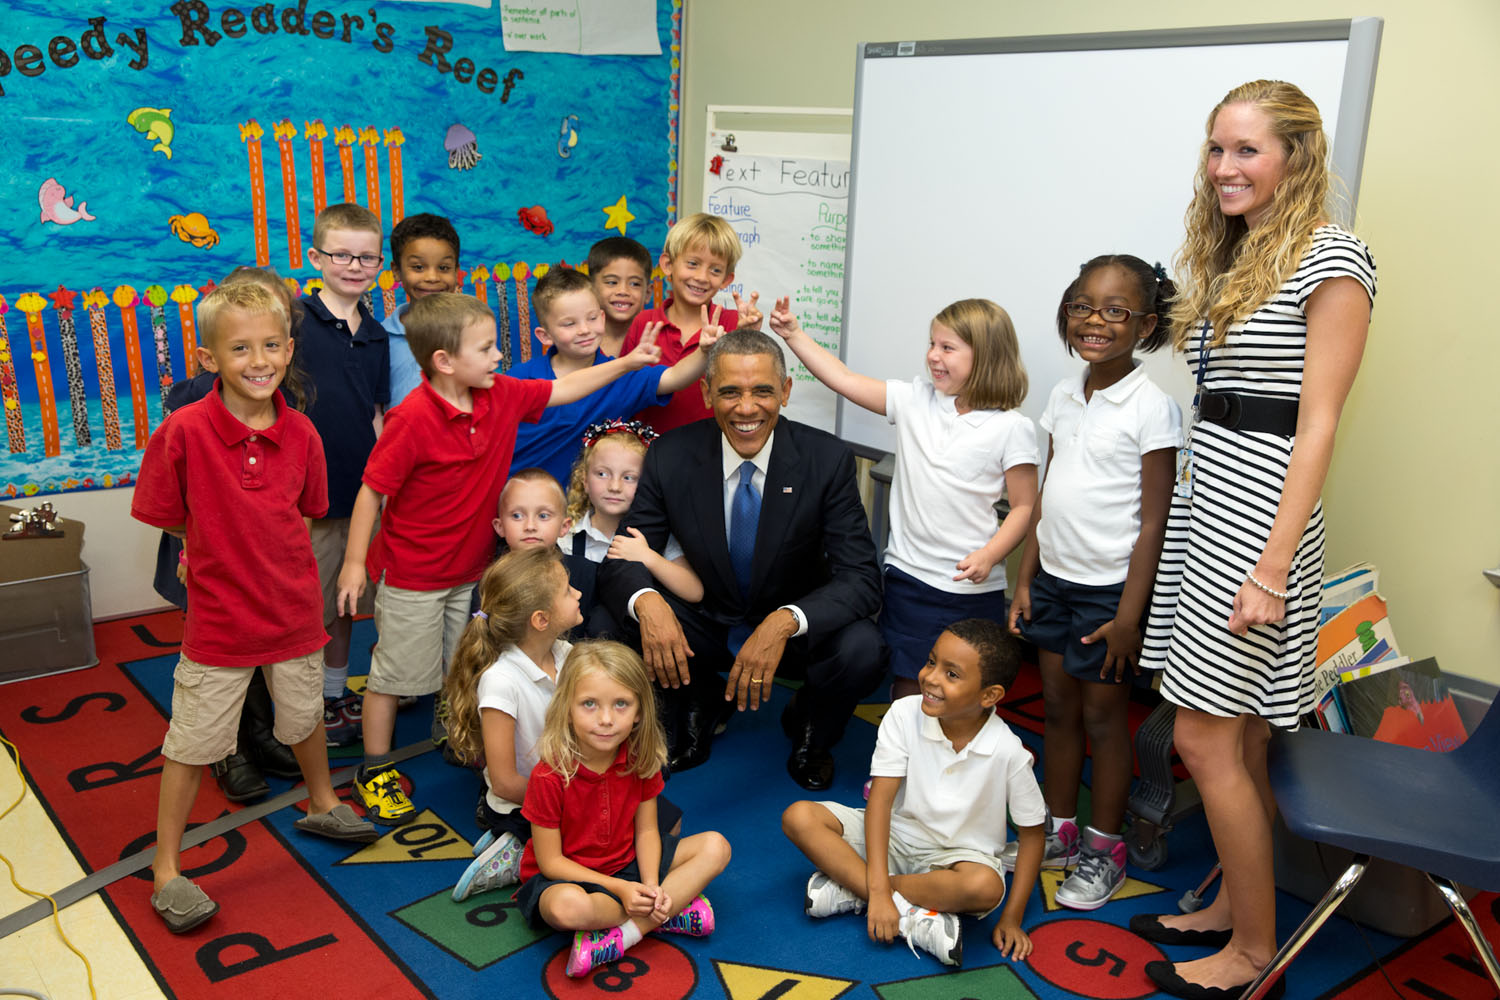 A group of students gives the president rabbit ears in a group photo taken at an elementary school at MacDill Air Force Base in Tampa, Florida. Official White House photo by Pete Souza.